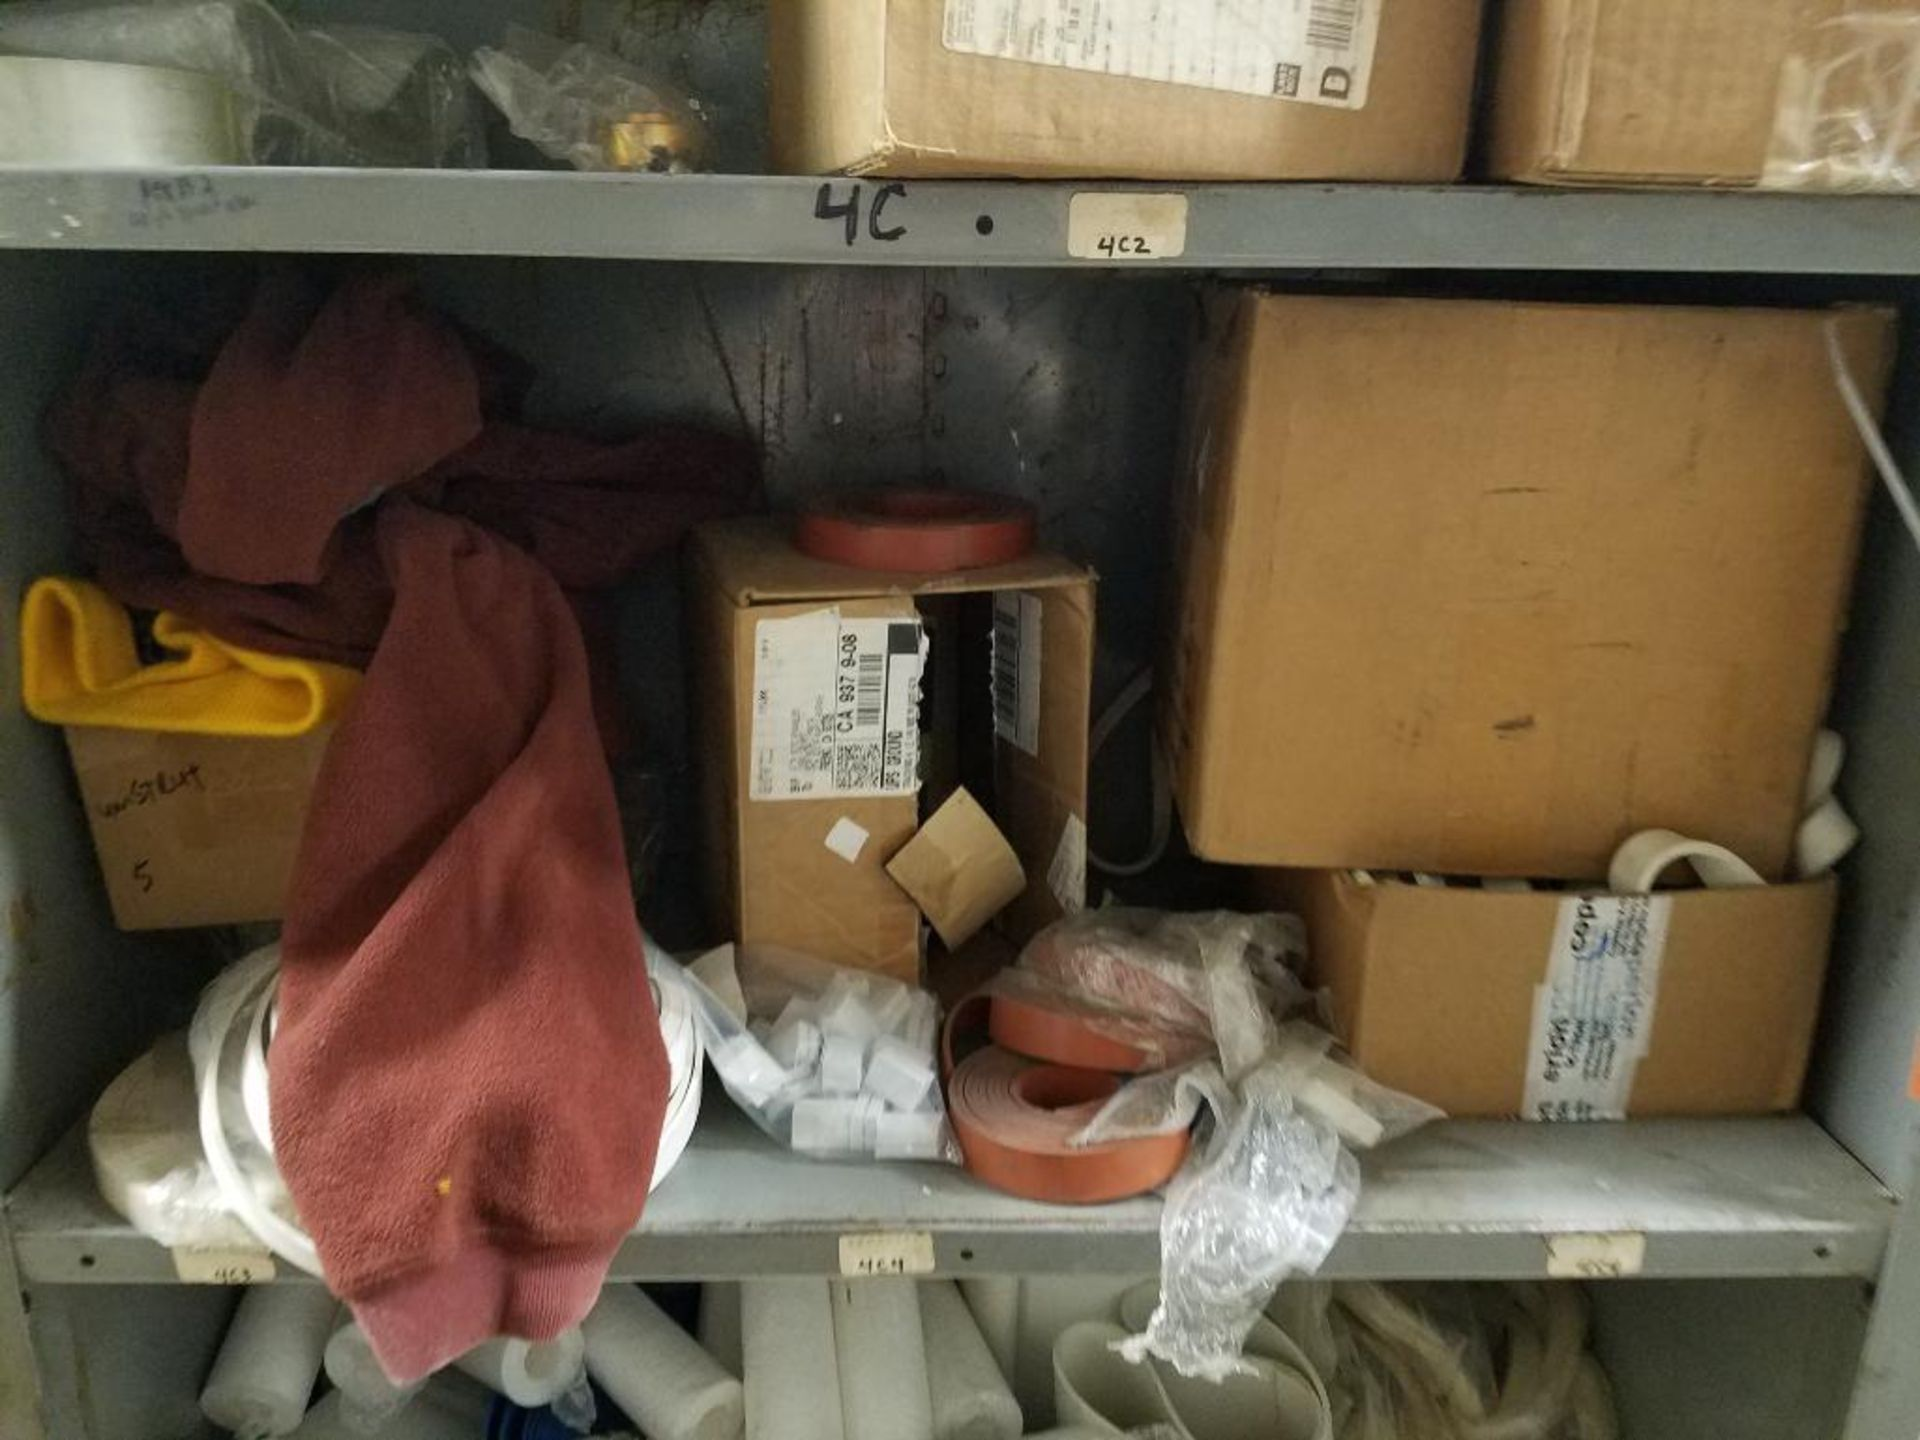 various replacement parts, conveyor belts, electrical components, gears and gauges - Image 19 of 21